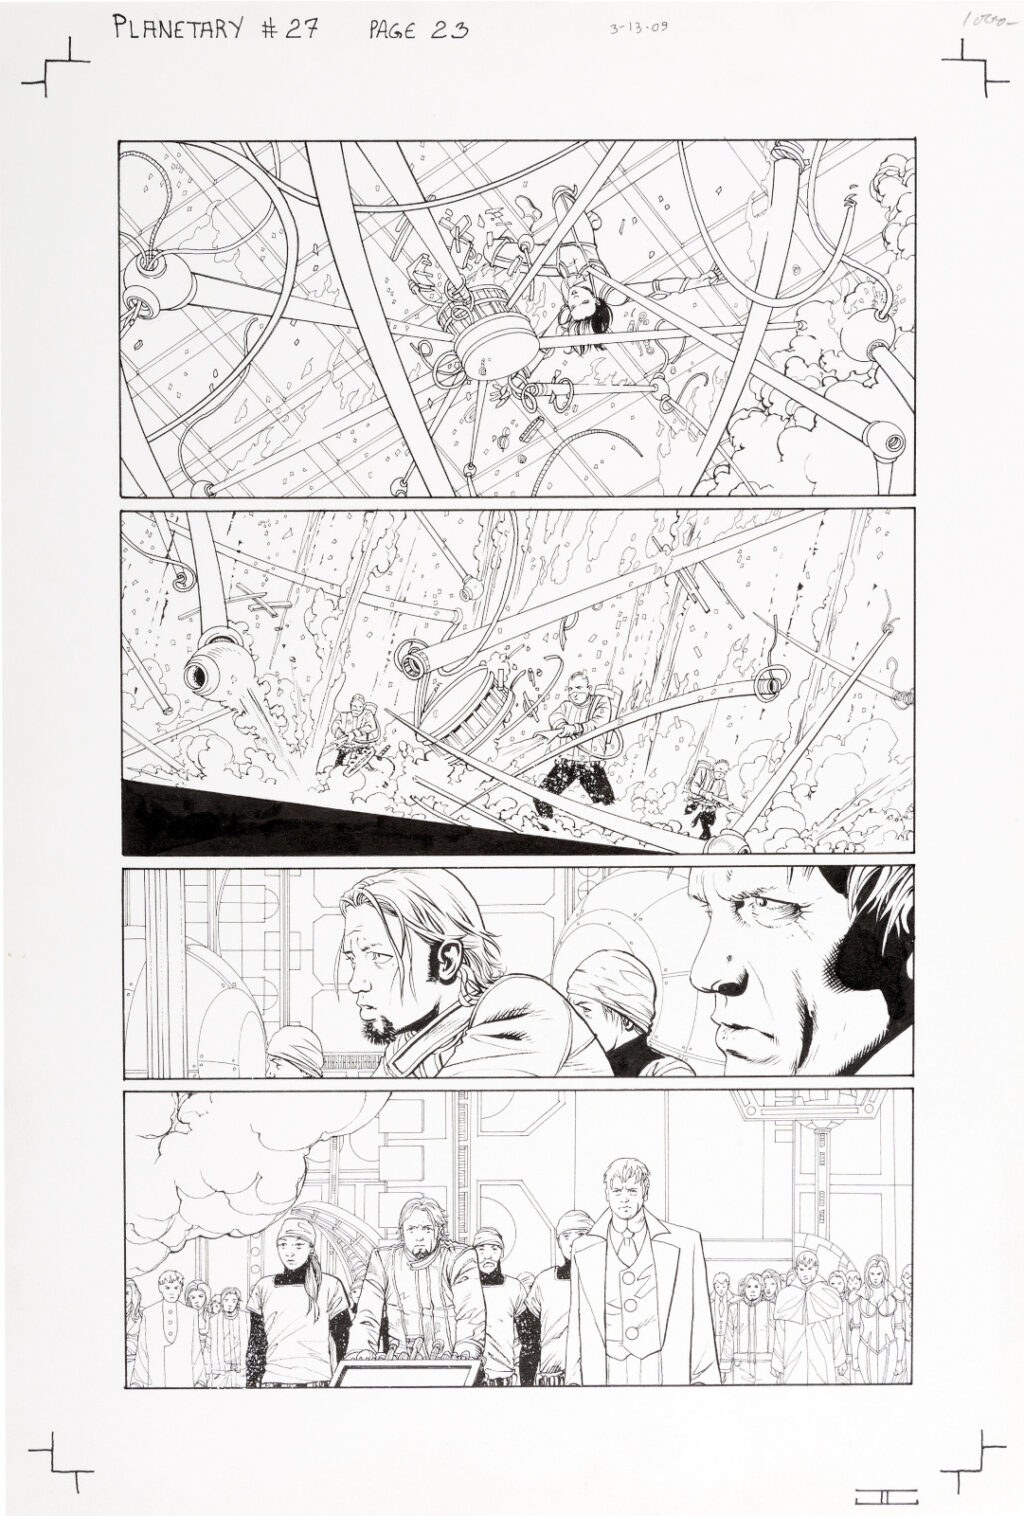 Planetary issue 27 page 23 by John Cassaday